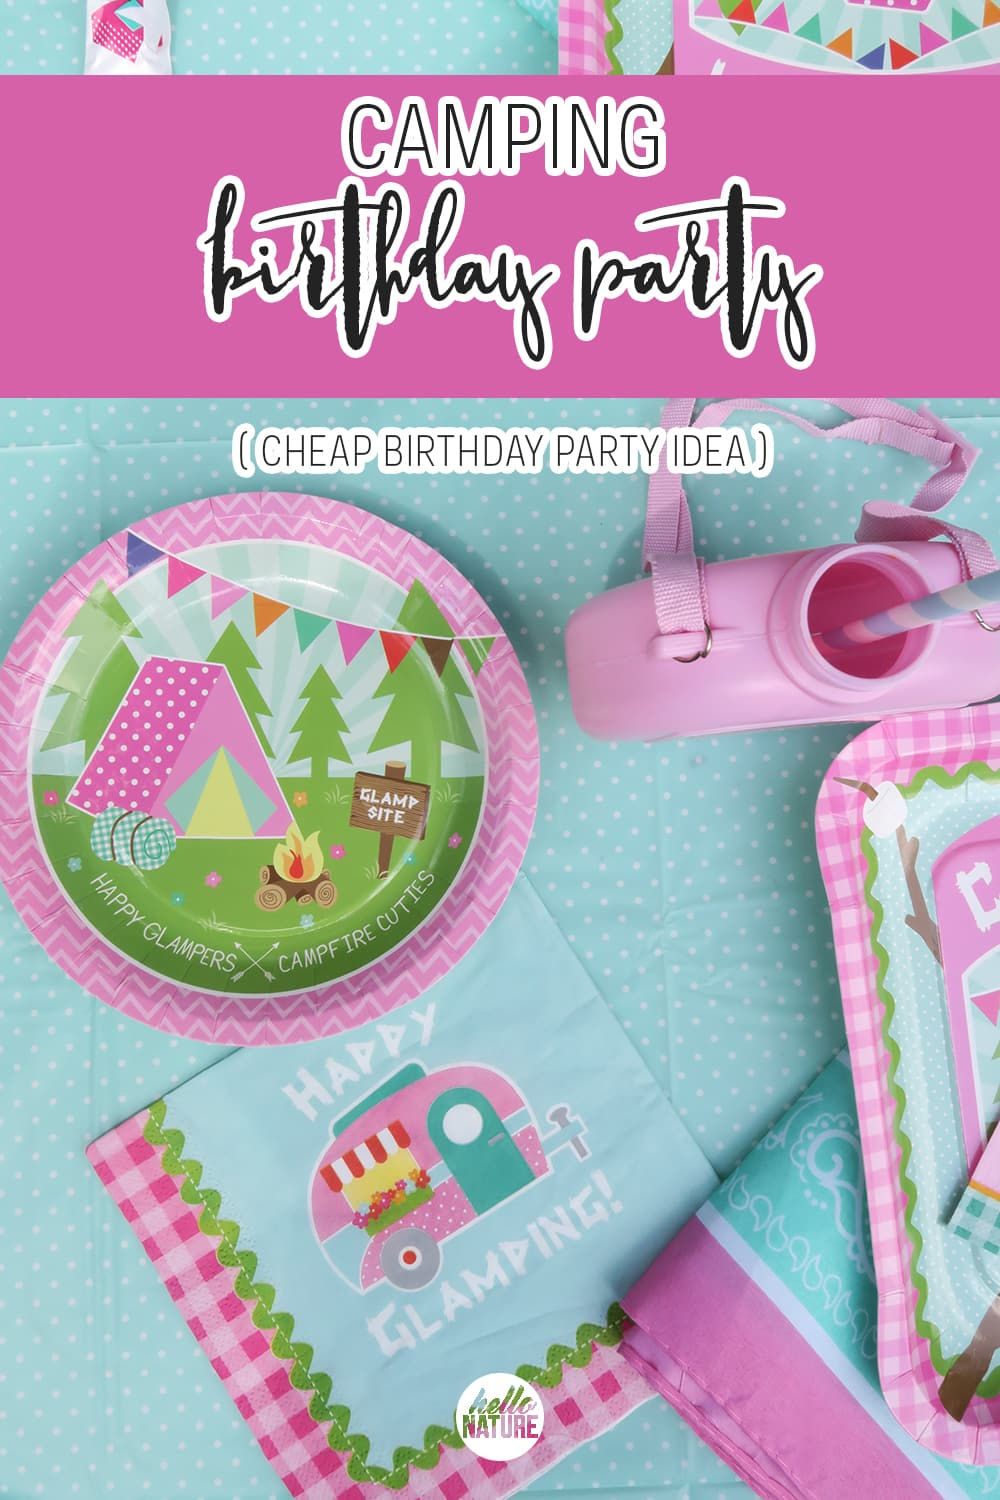 A camping birthday party is perfect for girls, young and old! This is one of the easiest cheap birthday party ideas that's fun for the whole family.